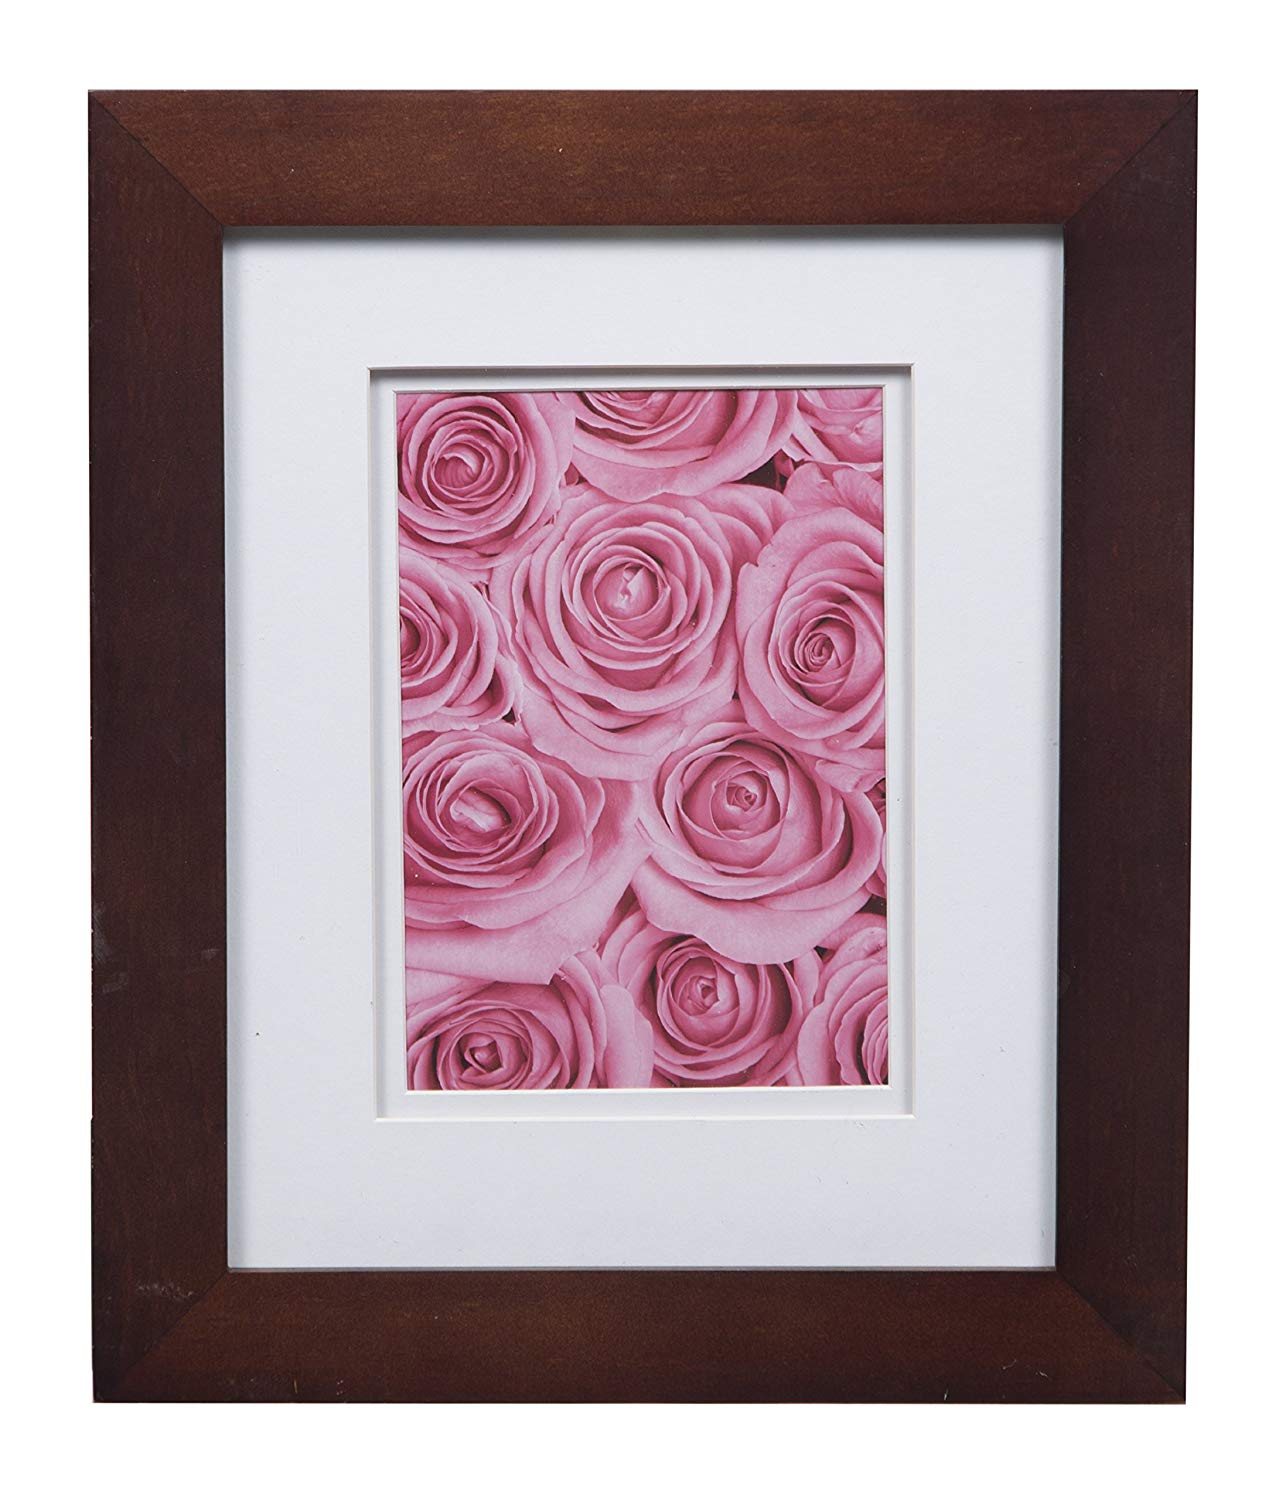 Gallery Solutions Flat Tabletop or Wall White Picture 8X10 Walnut Double Frame, MATTED to 5X7, 8 inches x 10 inches